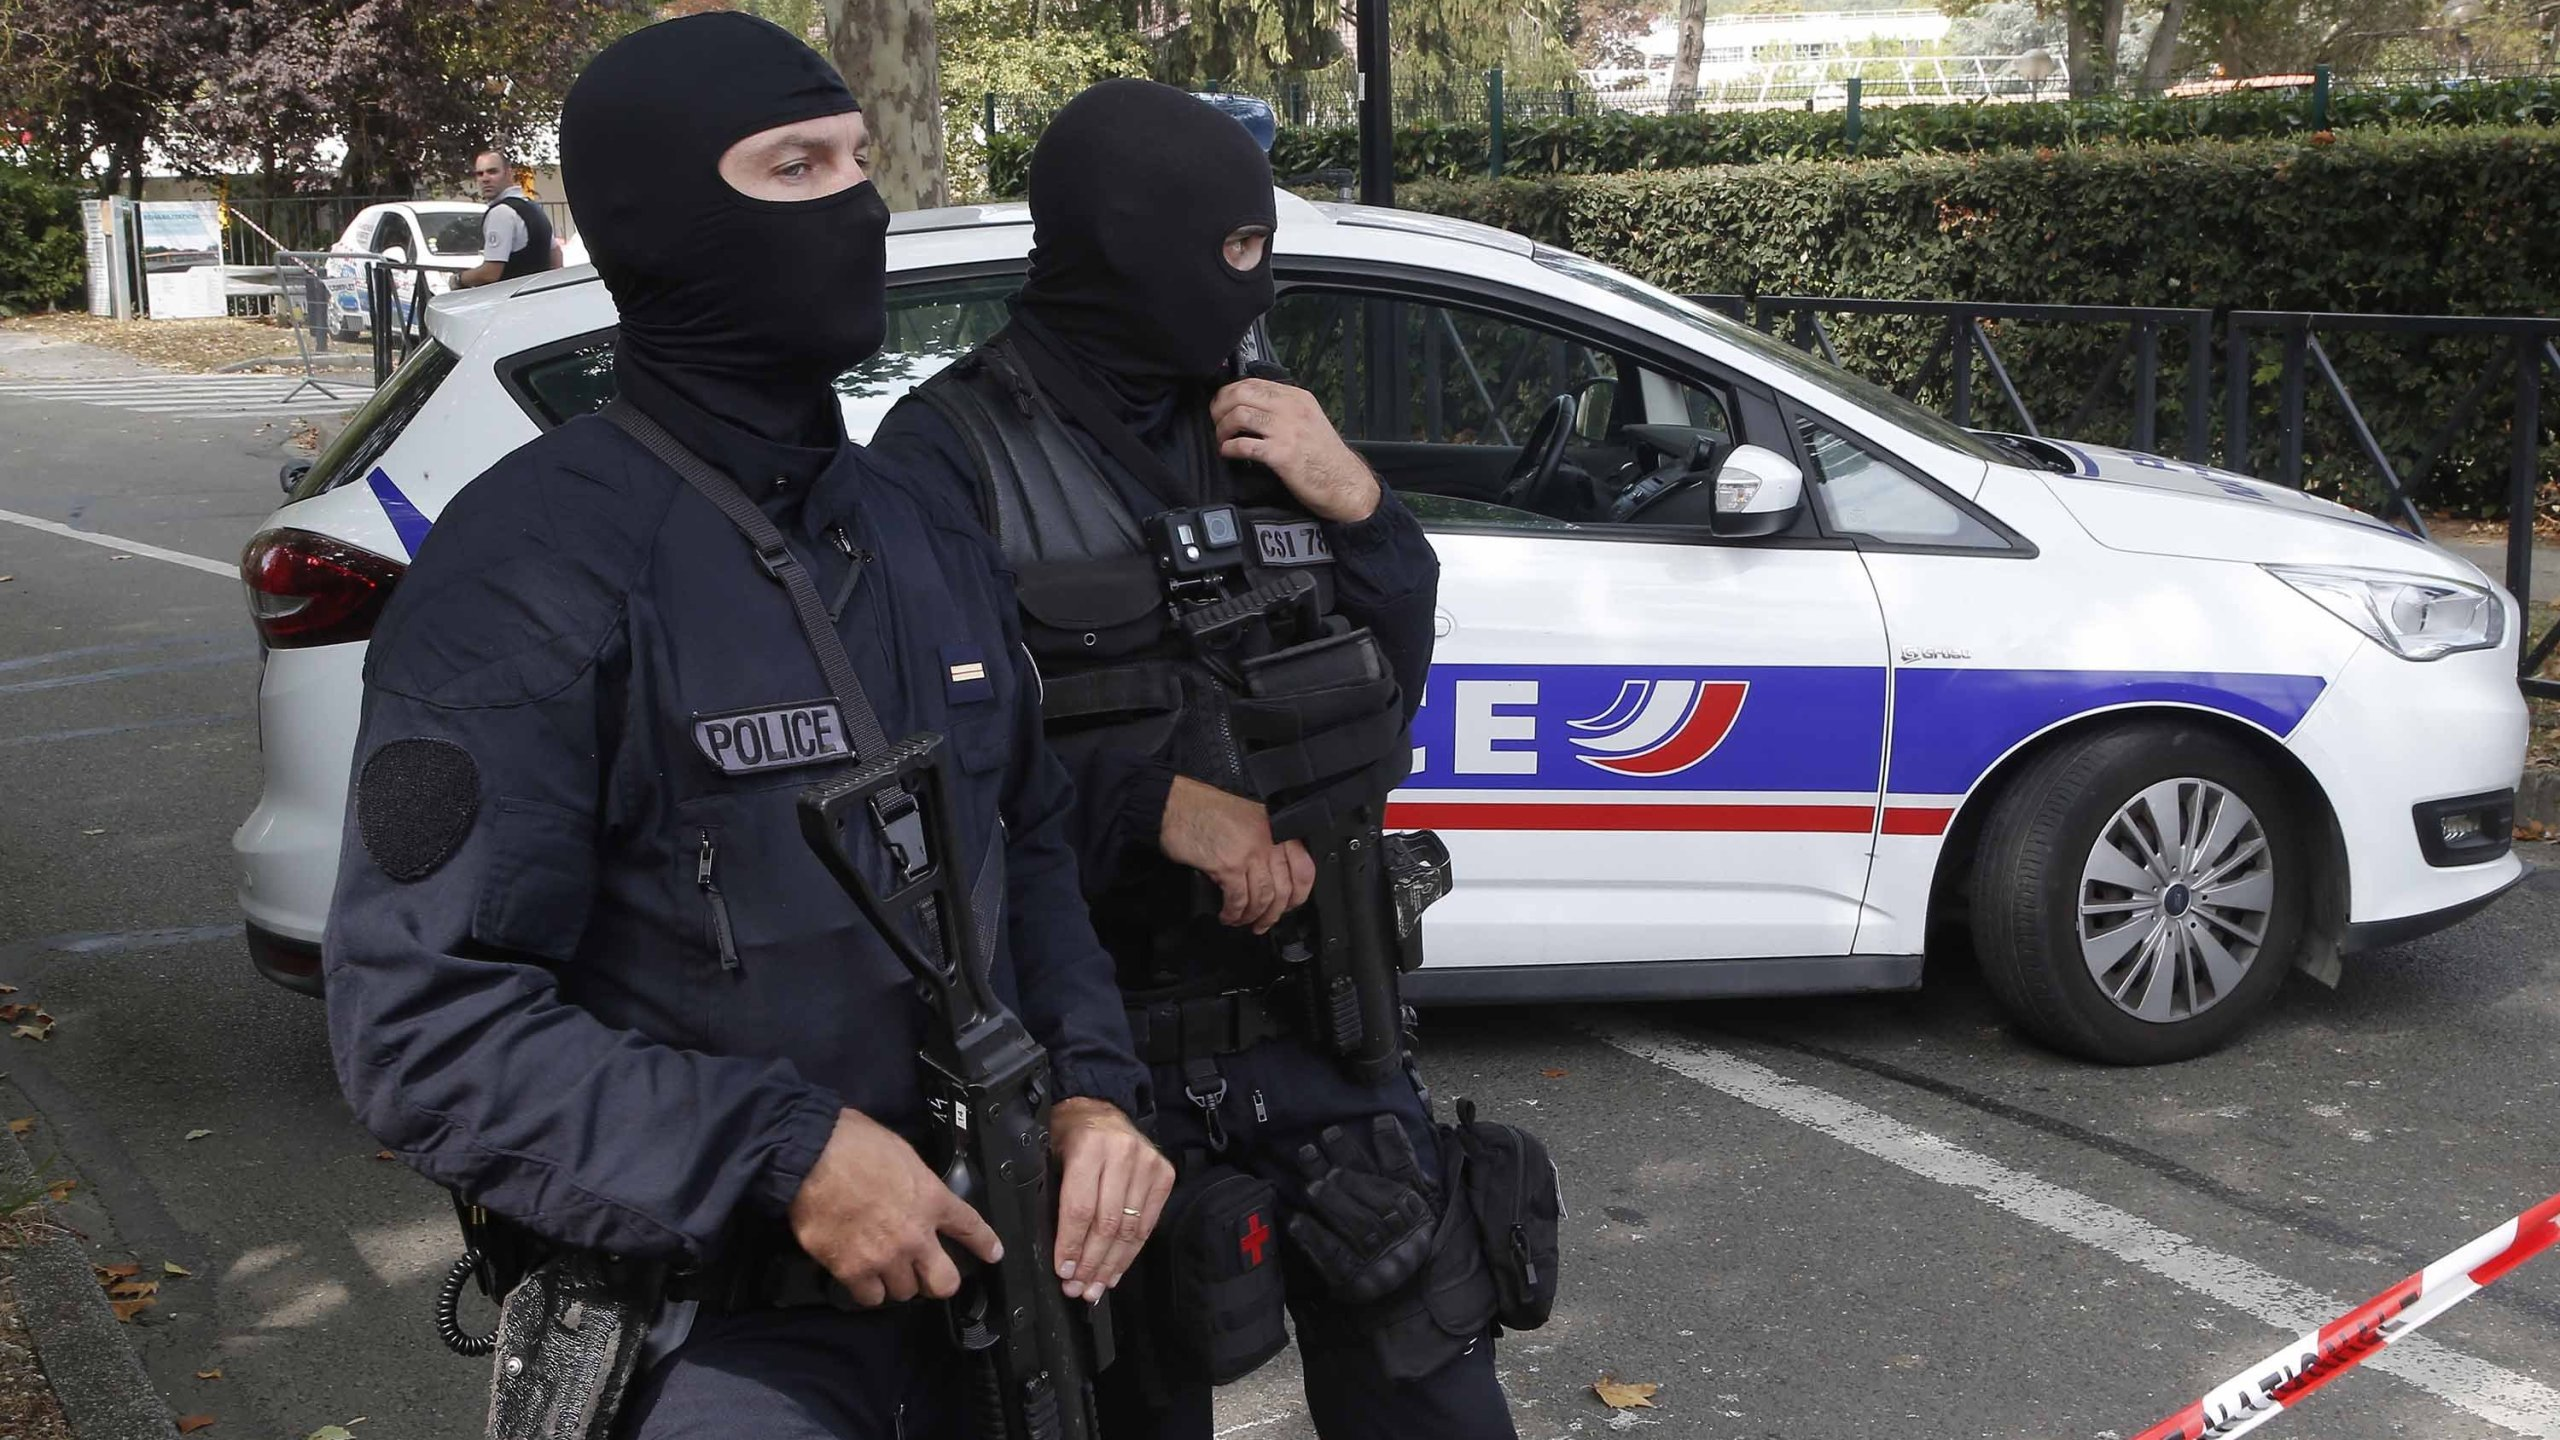 French police officers cordon off the area after a knife attack on Thursday in Trappes. (Credit: Michel Euler/AP)